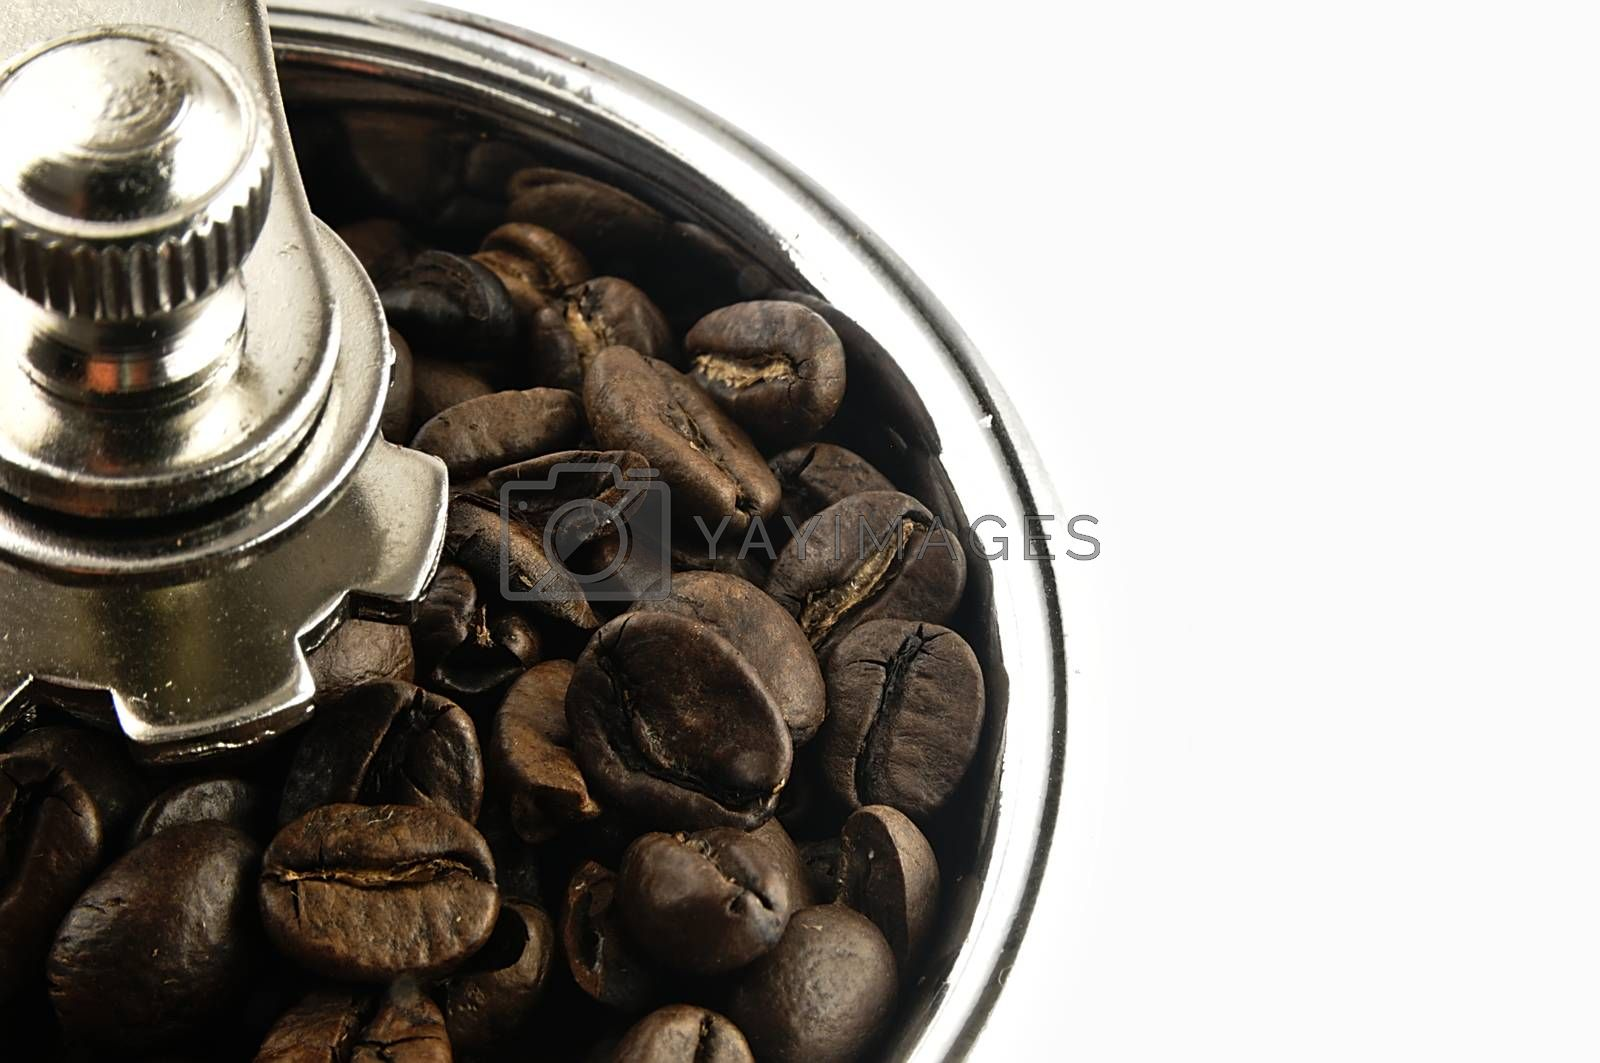 Coffee beans in an old coffee grinder.